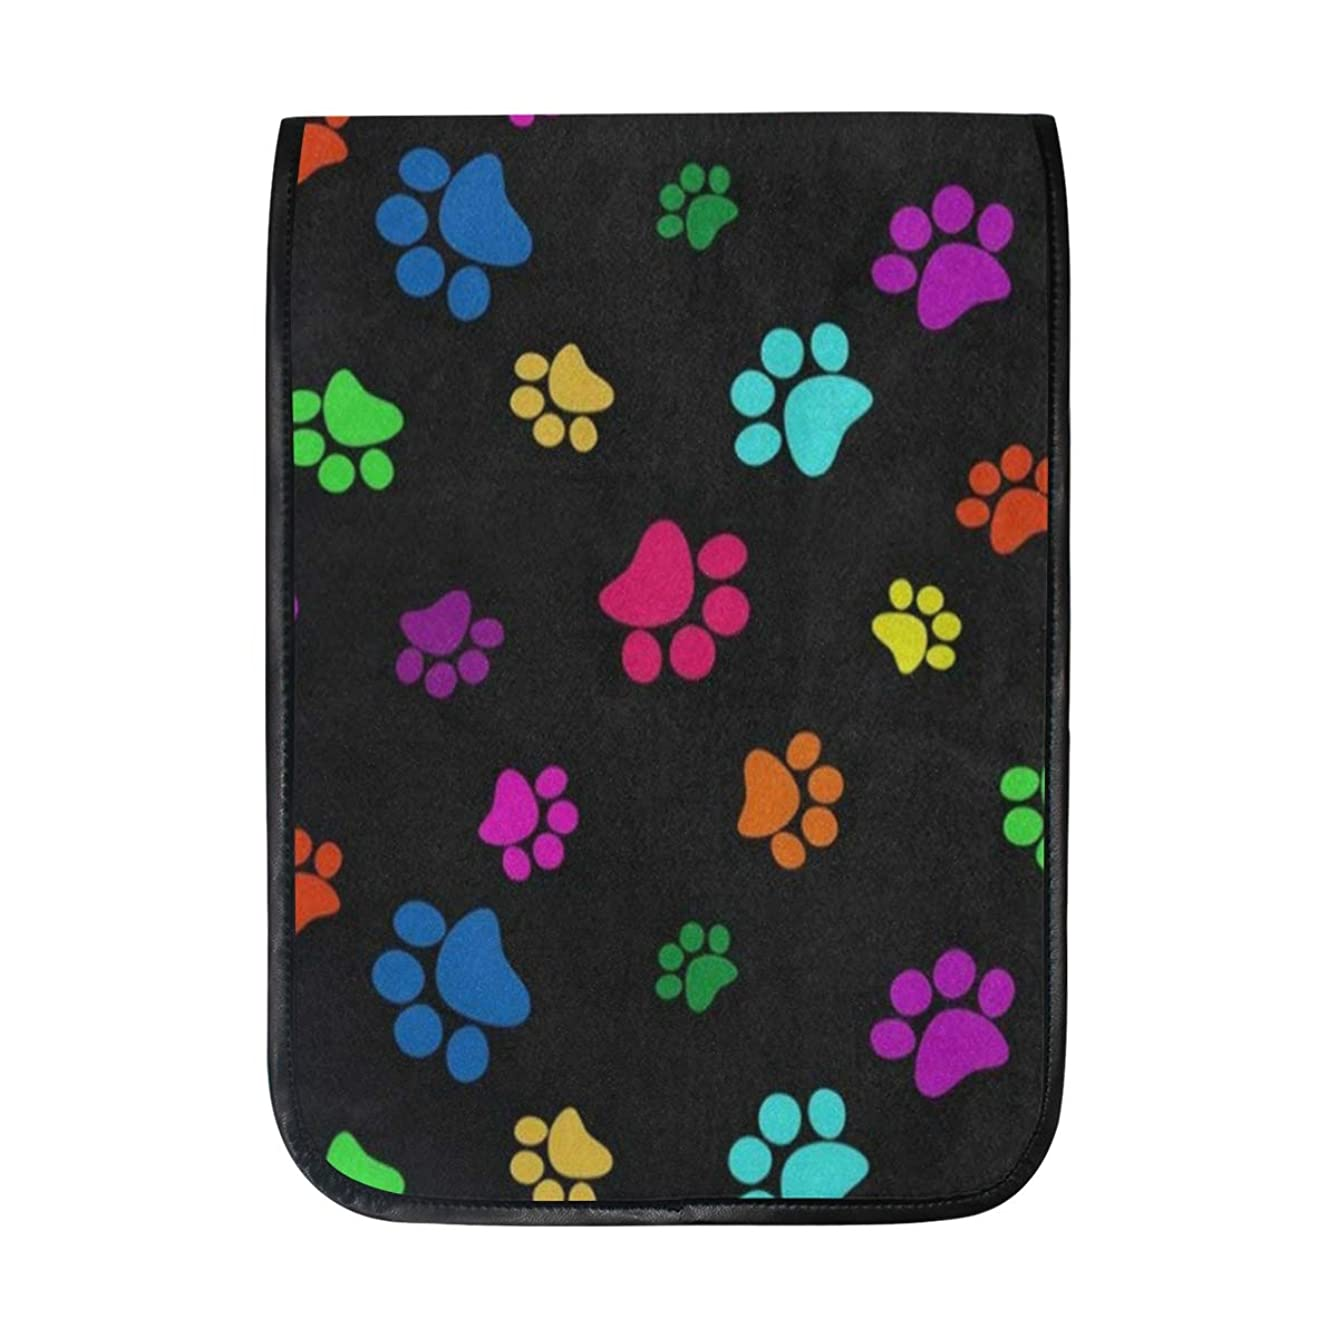 Ipad Pro 12-12.9 inch Sleeve Case Bag for Surface Pro Colorful Dog Paw Print Black Mac Protective Carrying Cover Handbag for 11